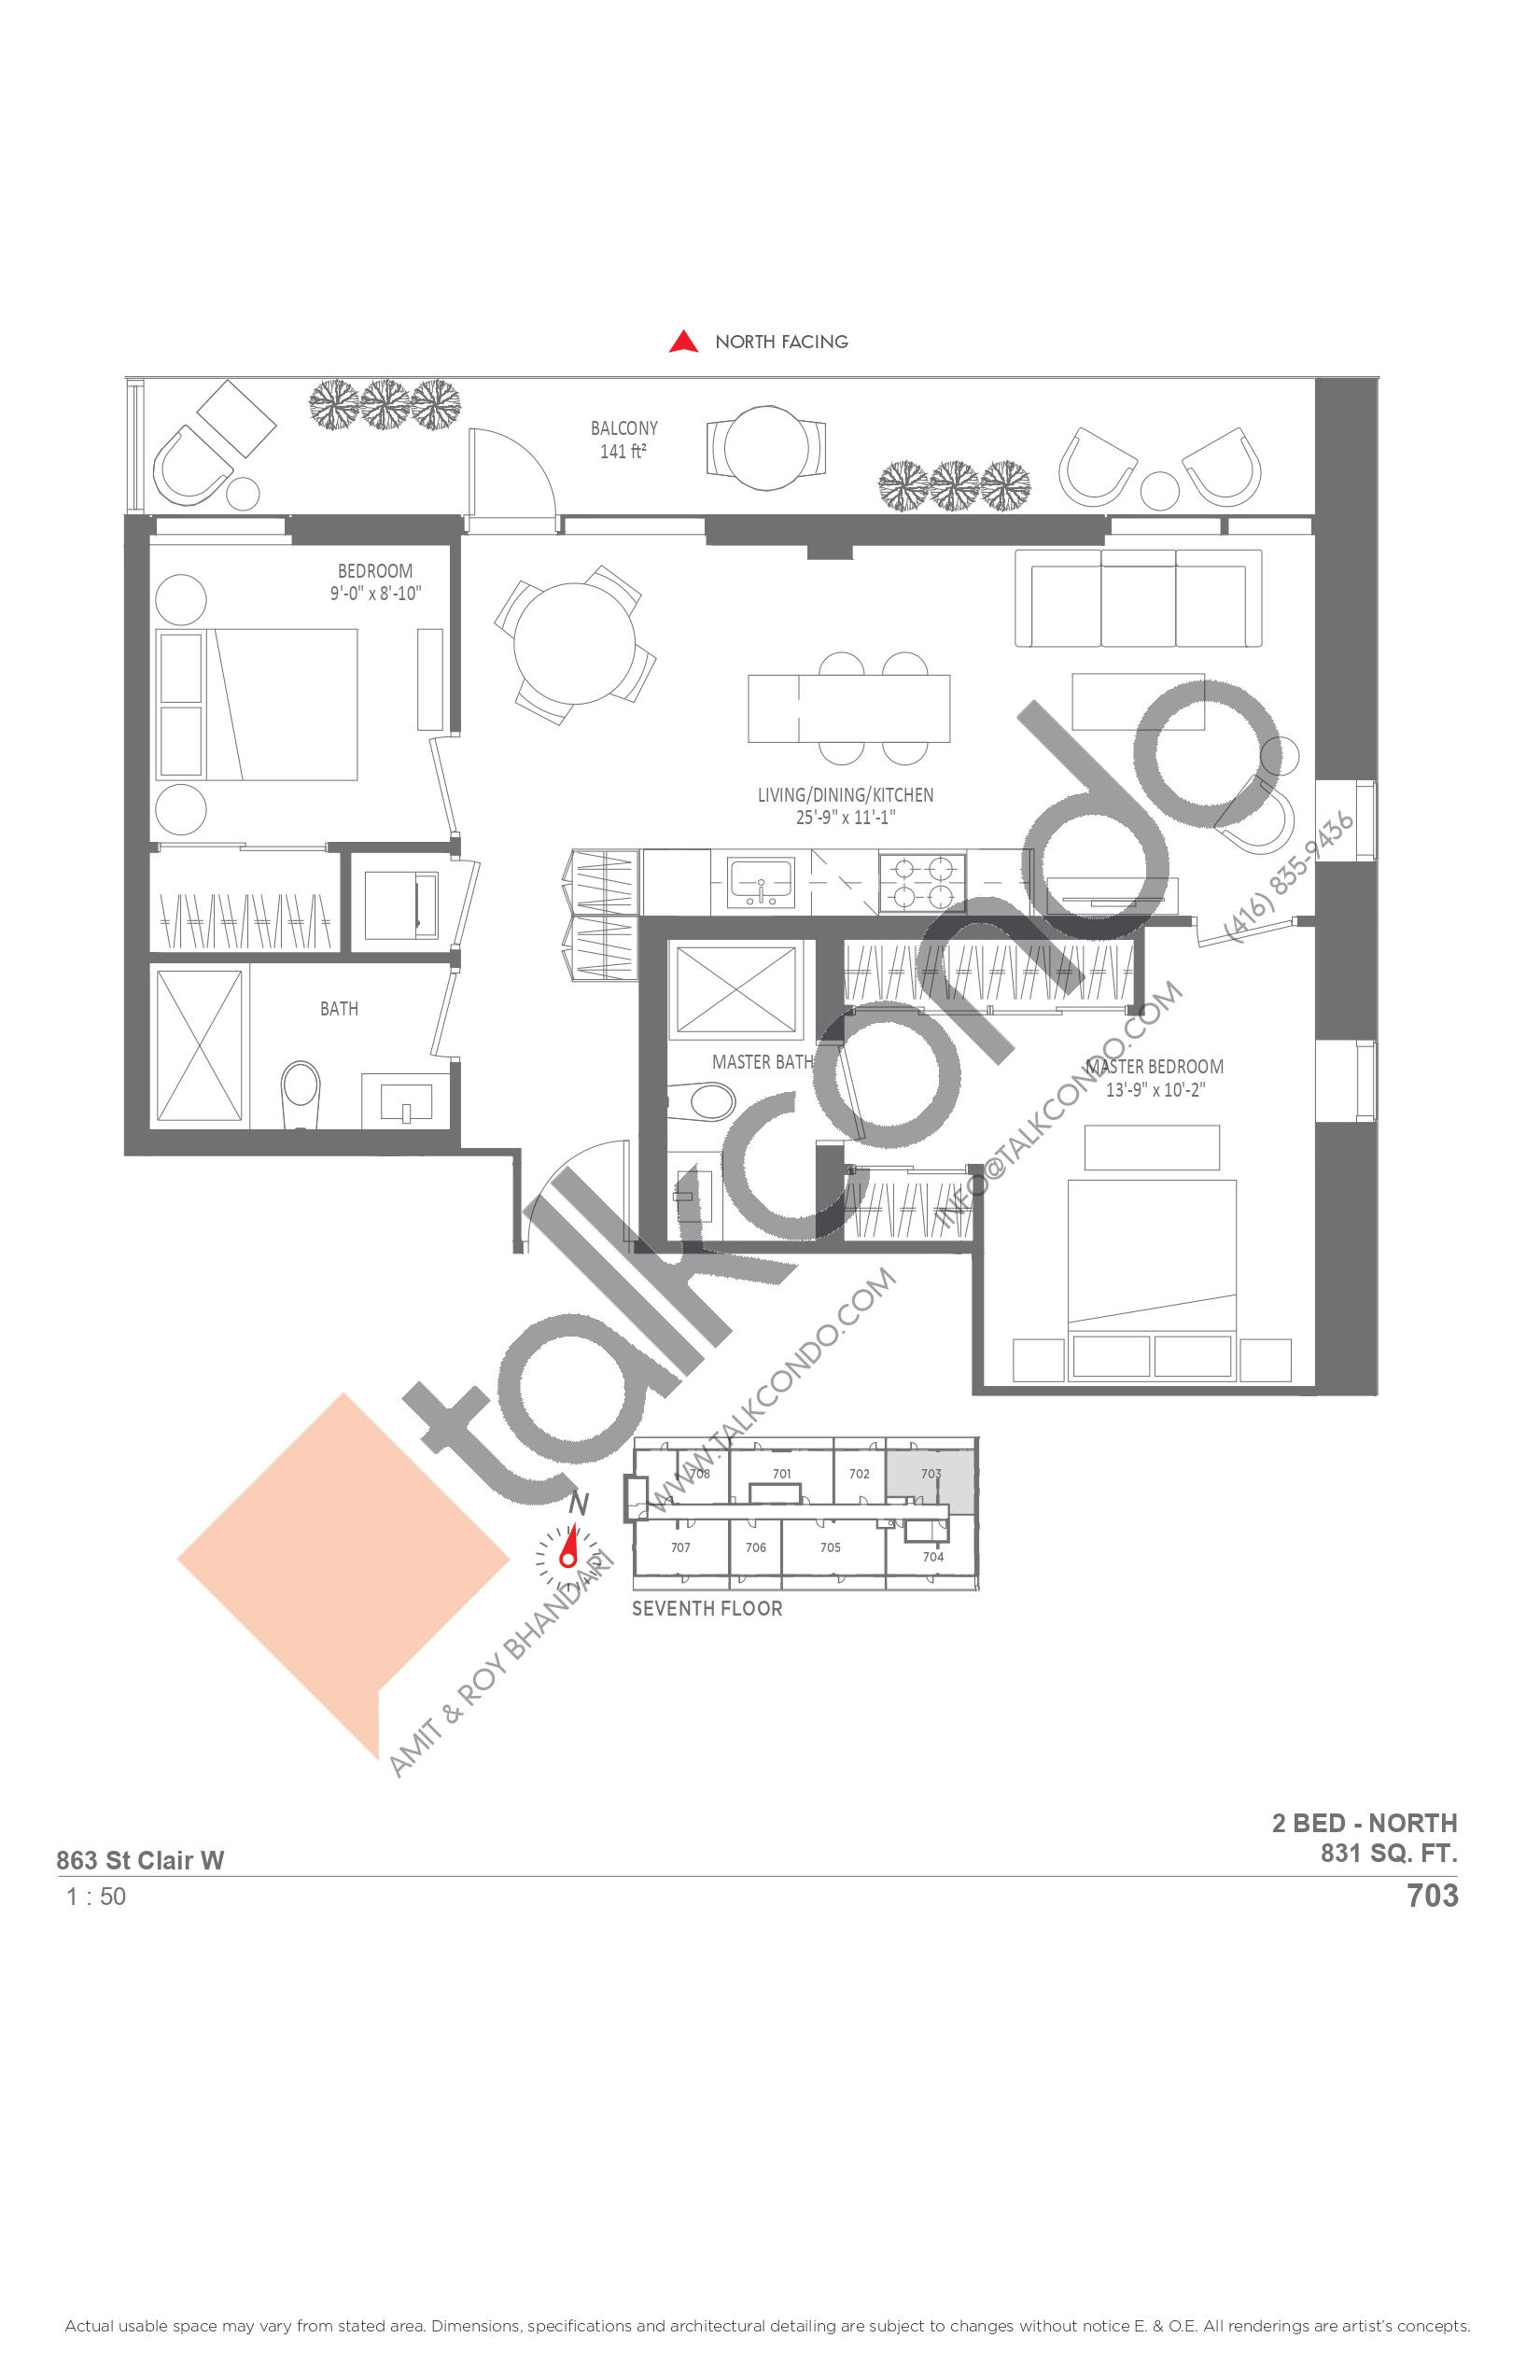 703 Floor Plan at Monza Condos - 831 sq.ft